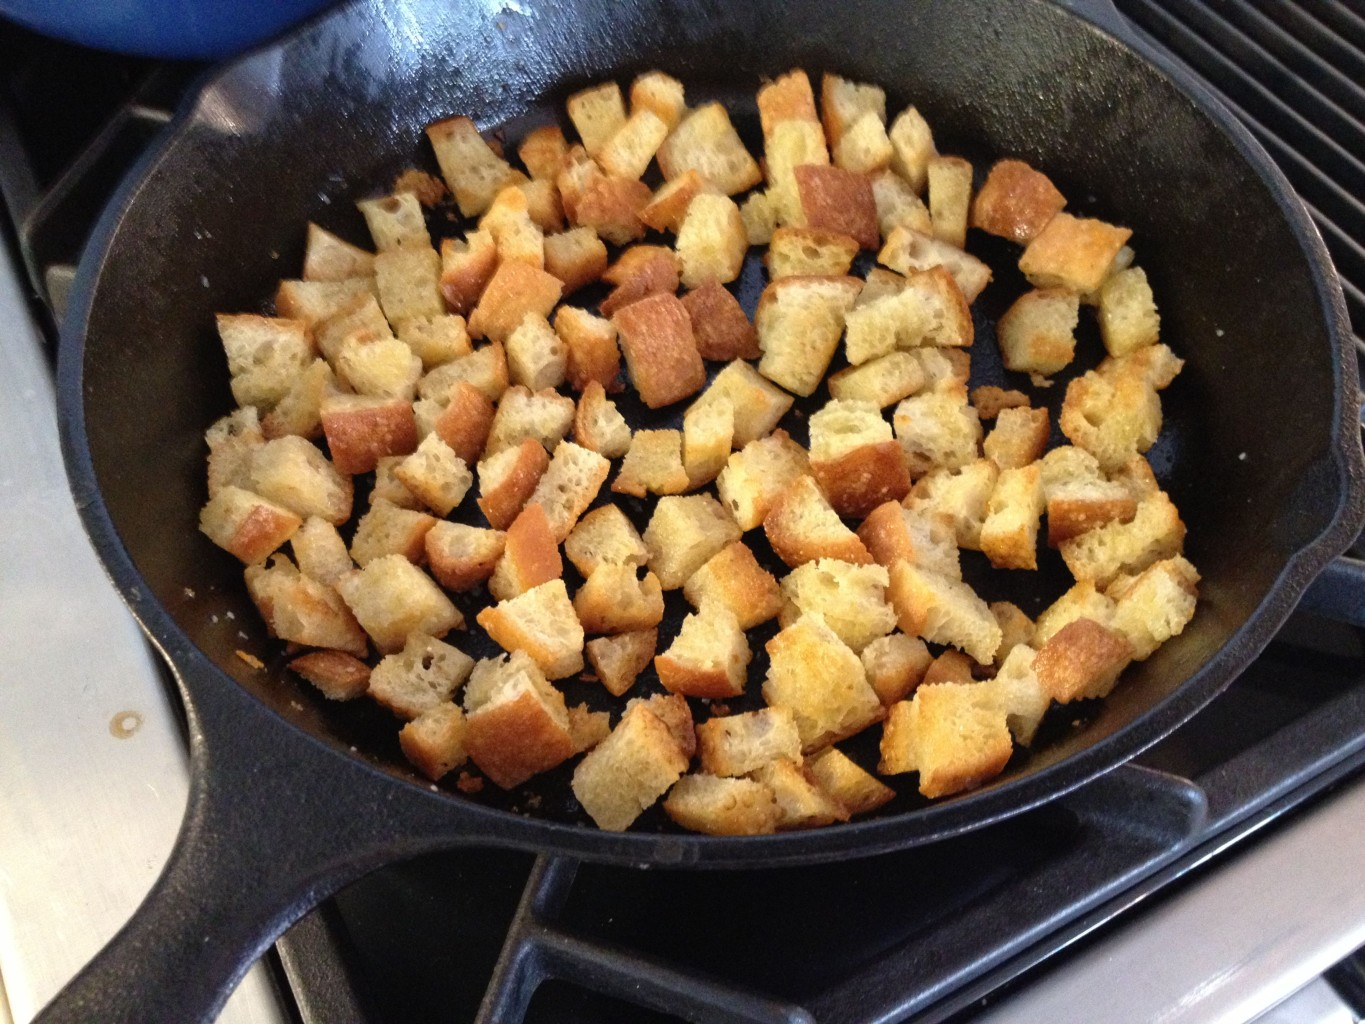 ticcroutons cooking